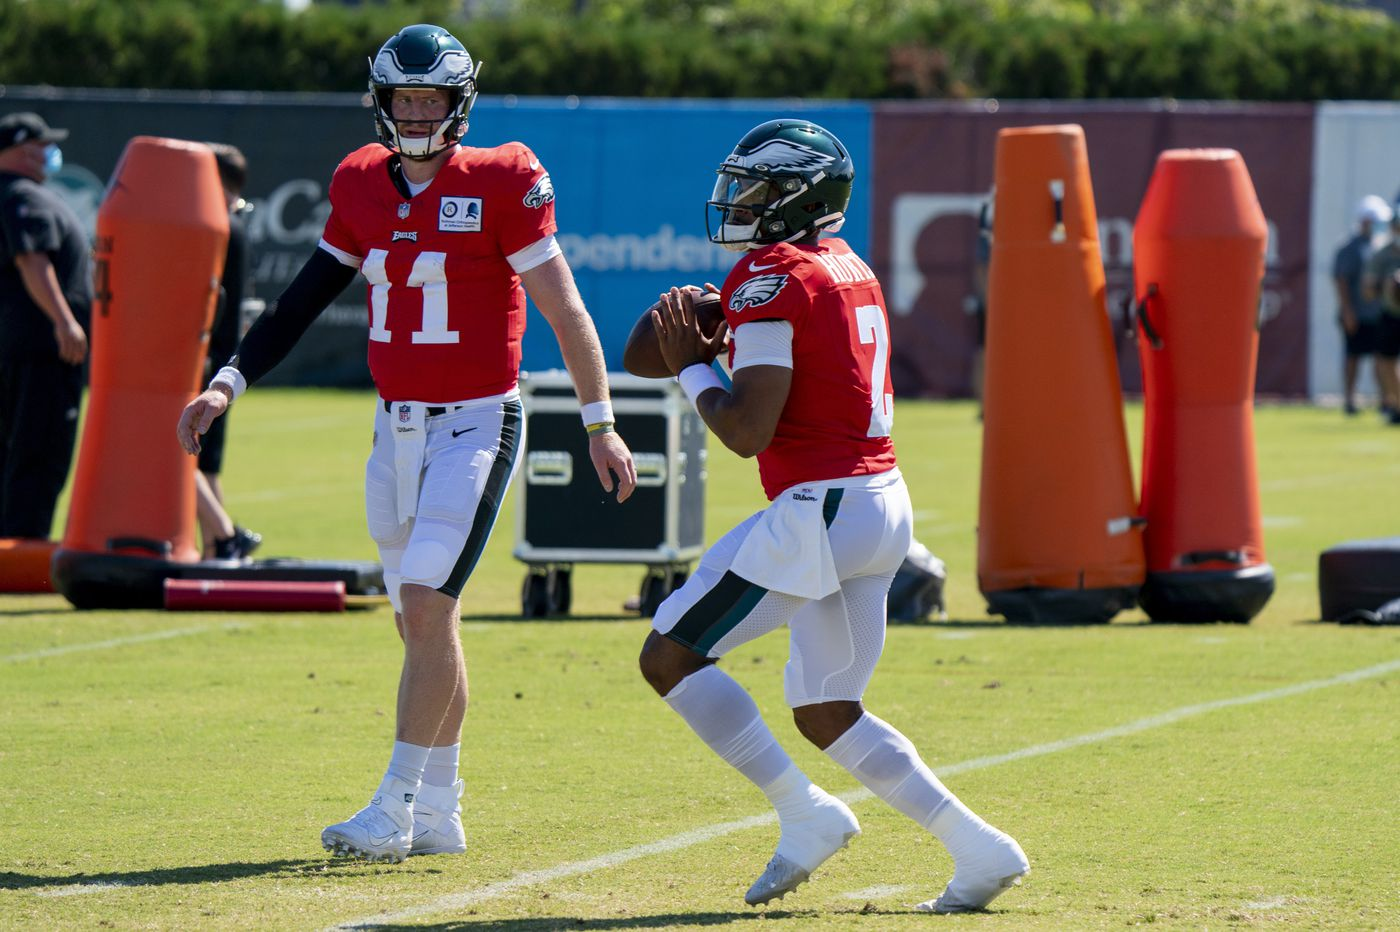 With Jalen Hurts lurking, Eagles' Carson Wentz shows he's no Jared Goff, or even Dak Prescott | Marcus Hayes